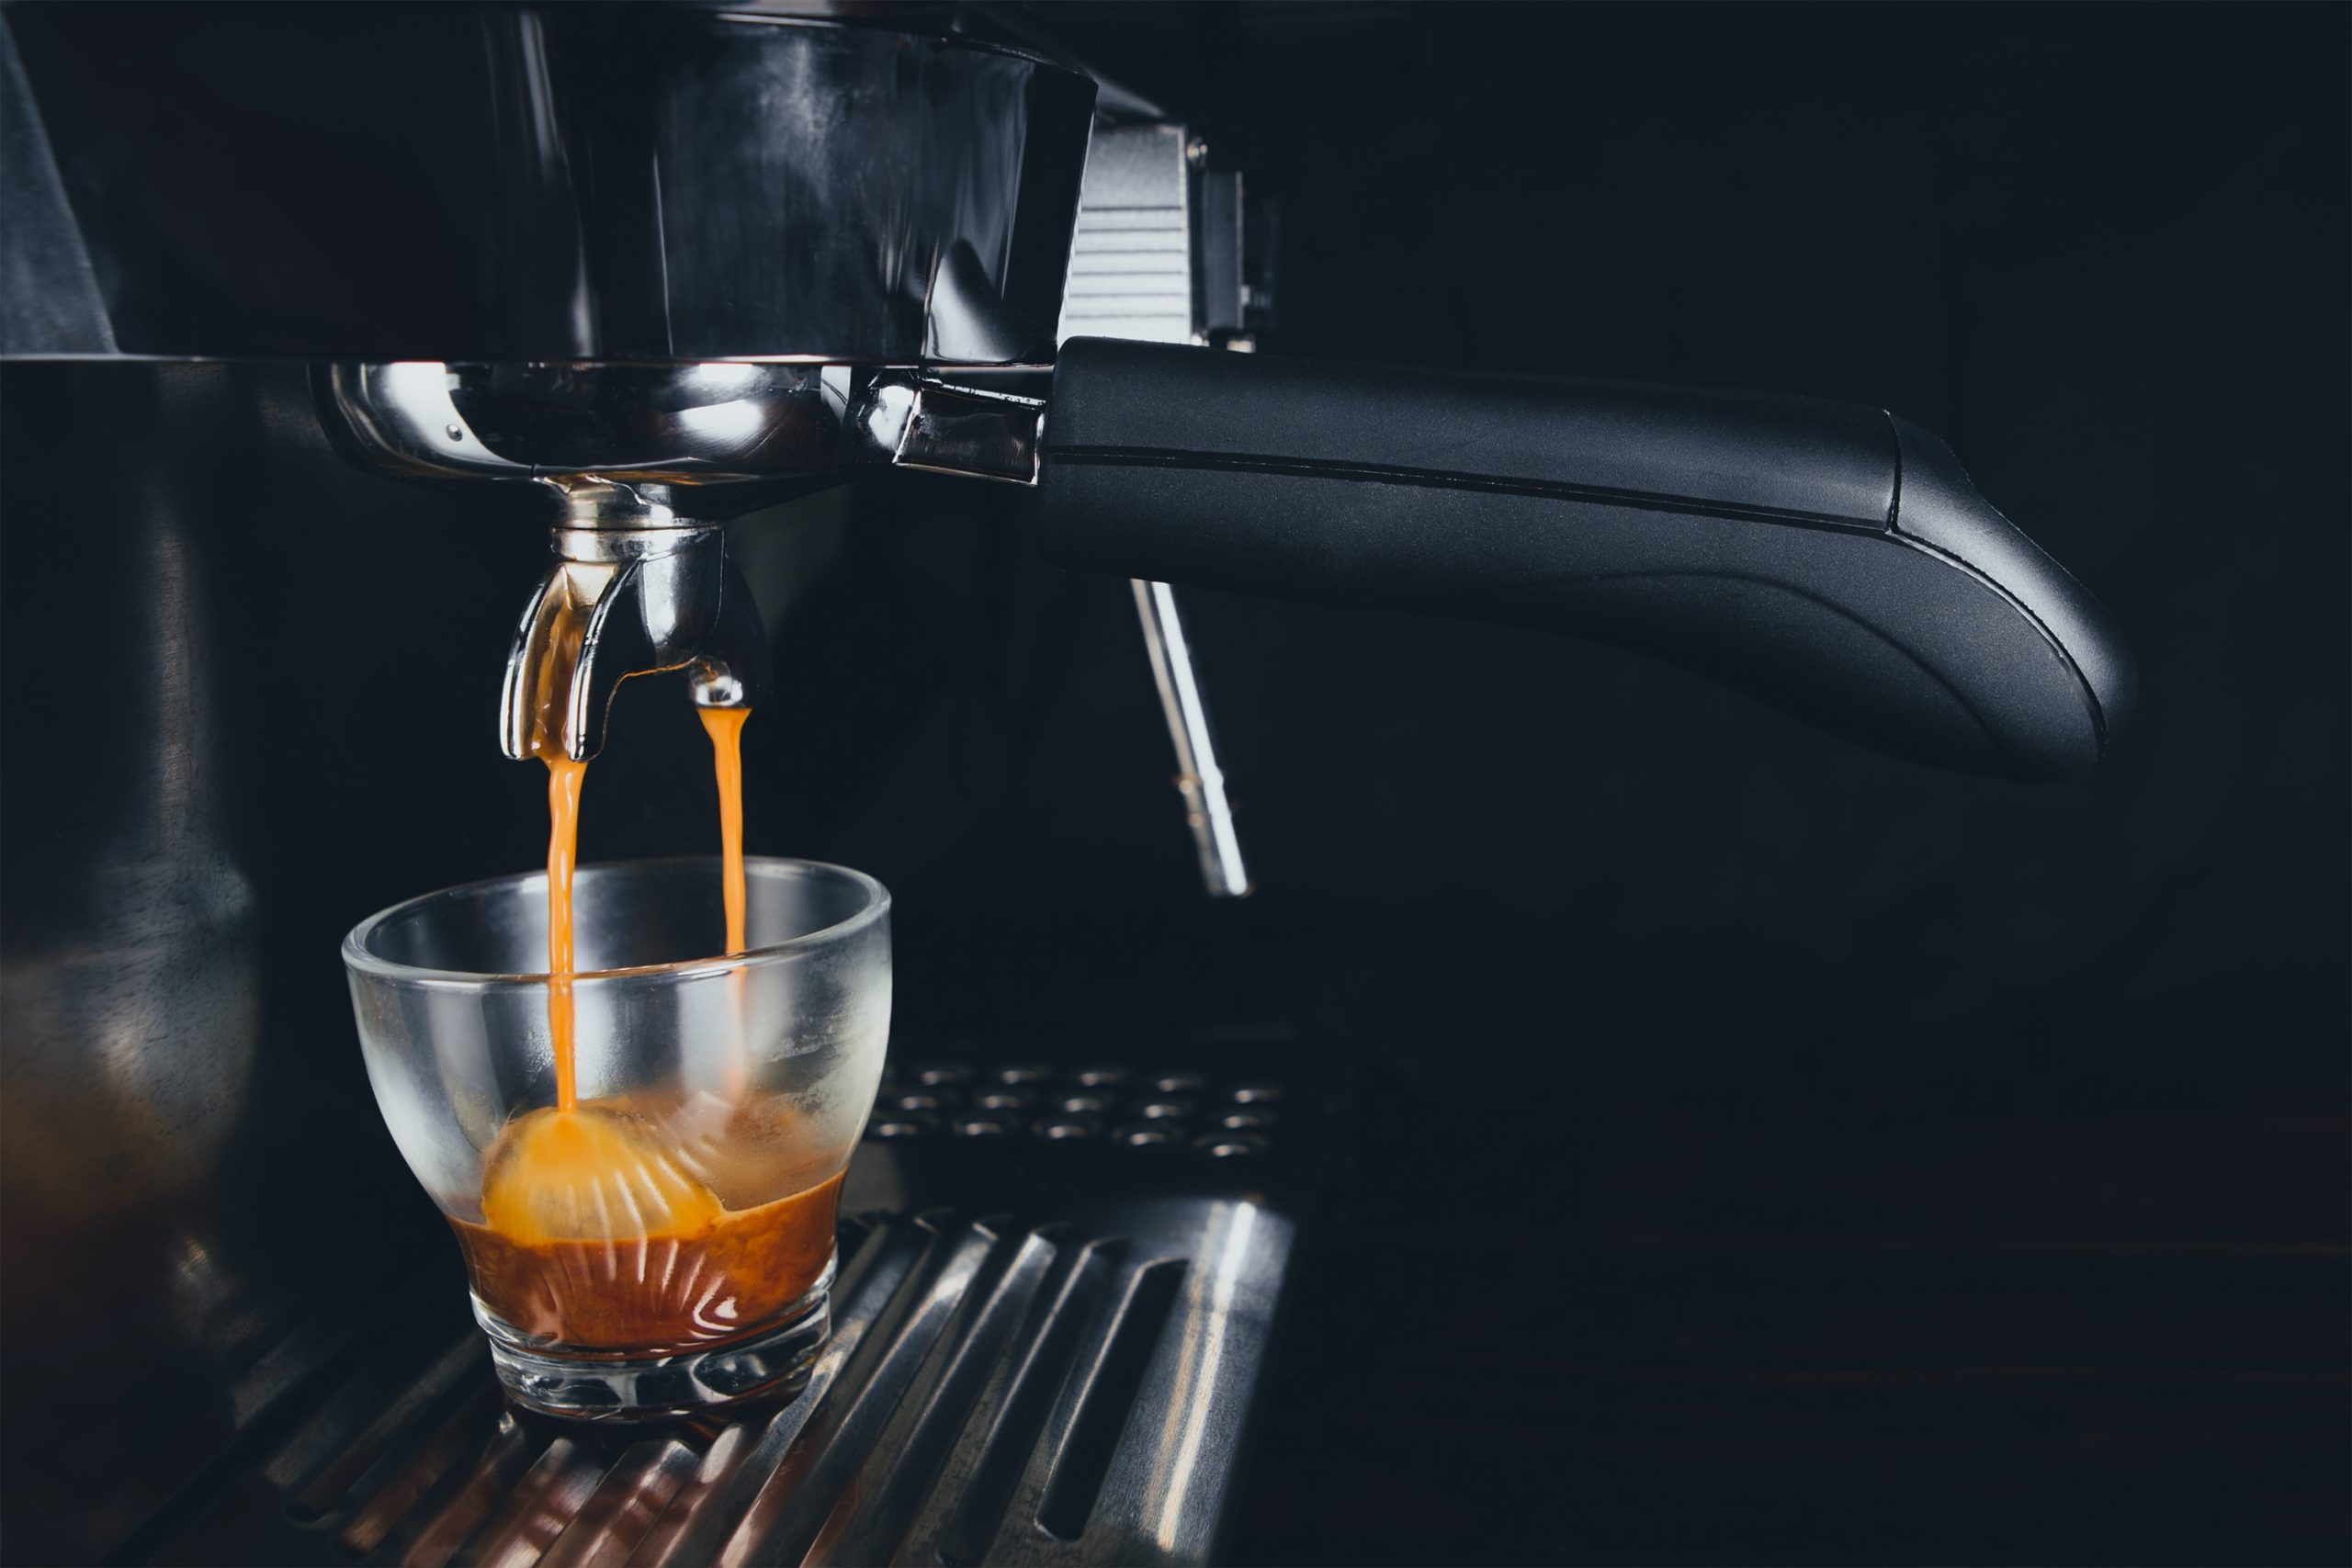 espresso being extracted into a cup